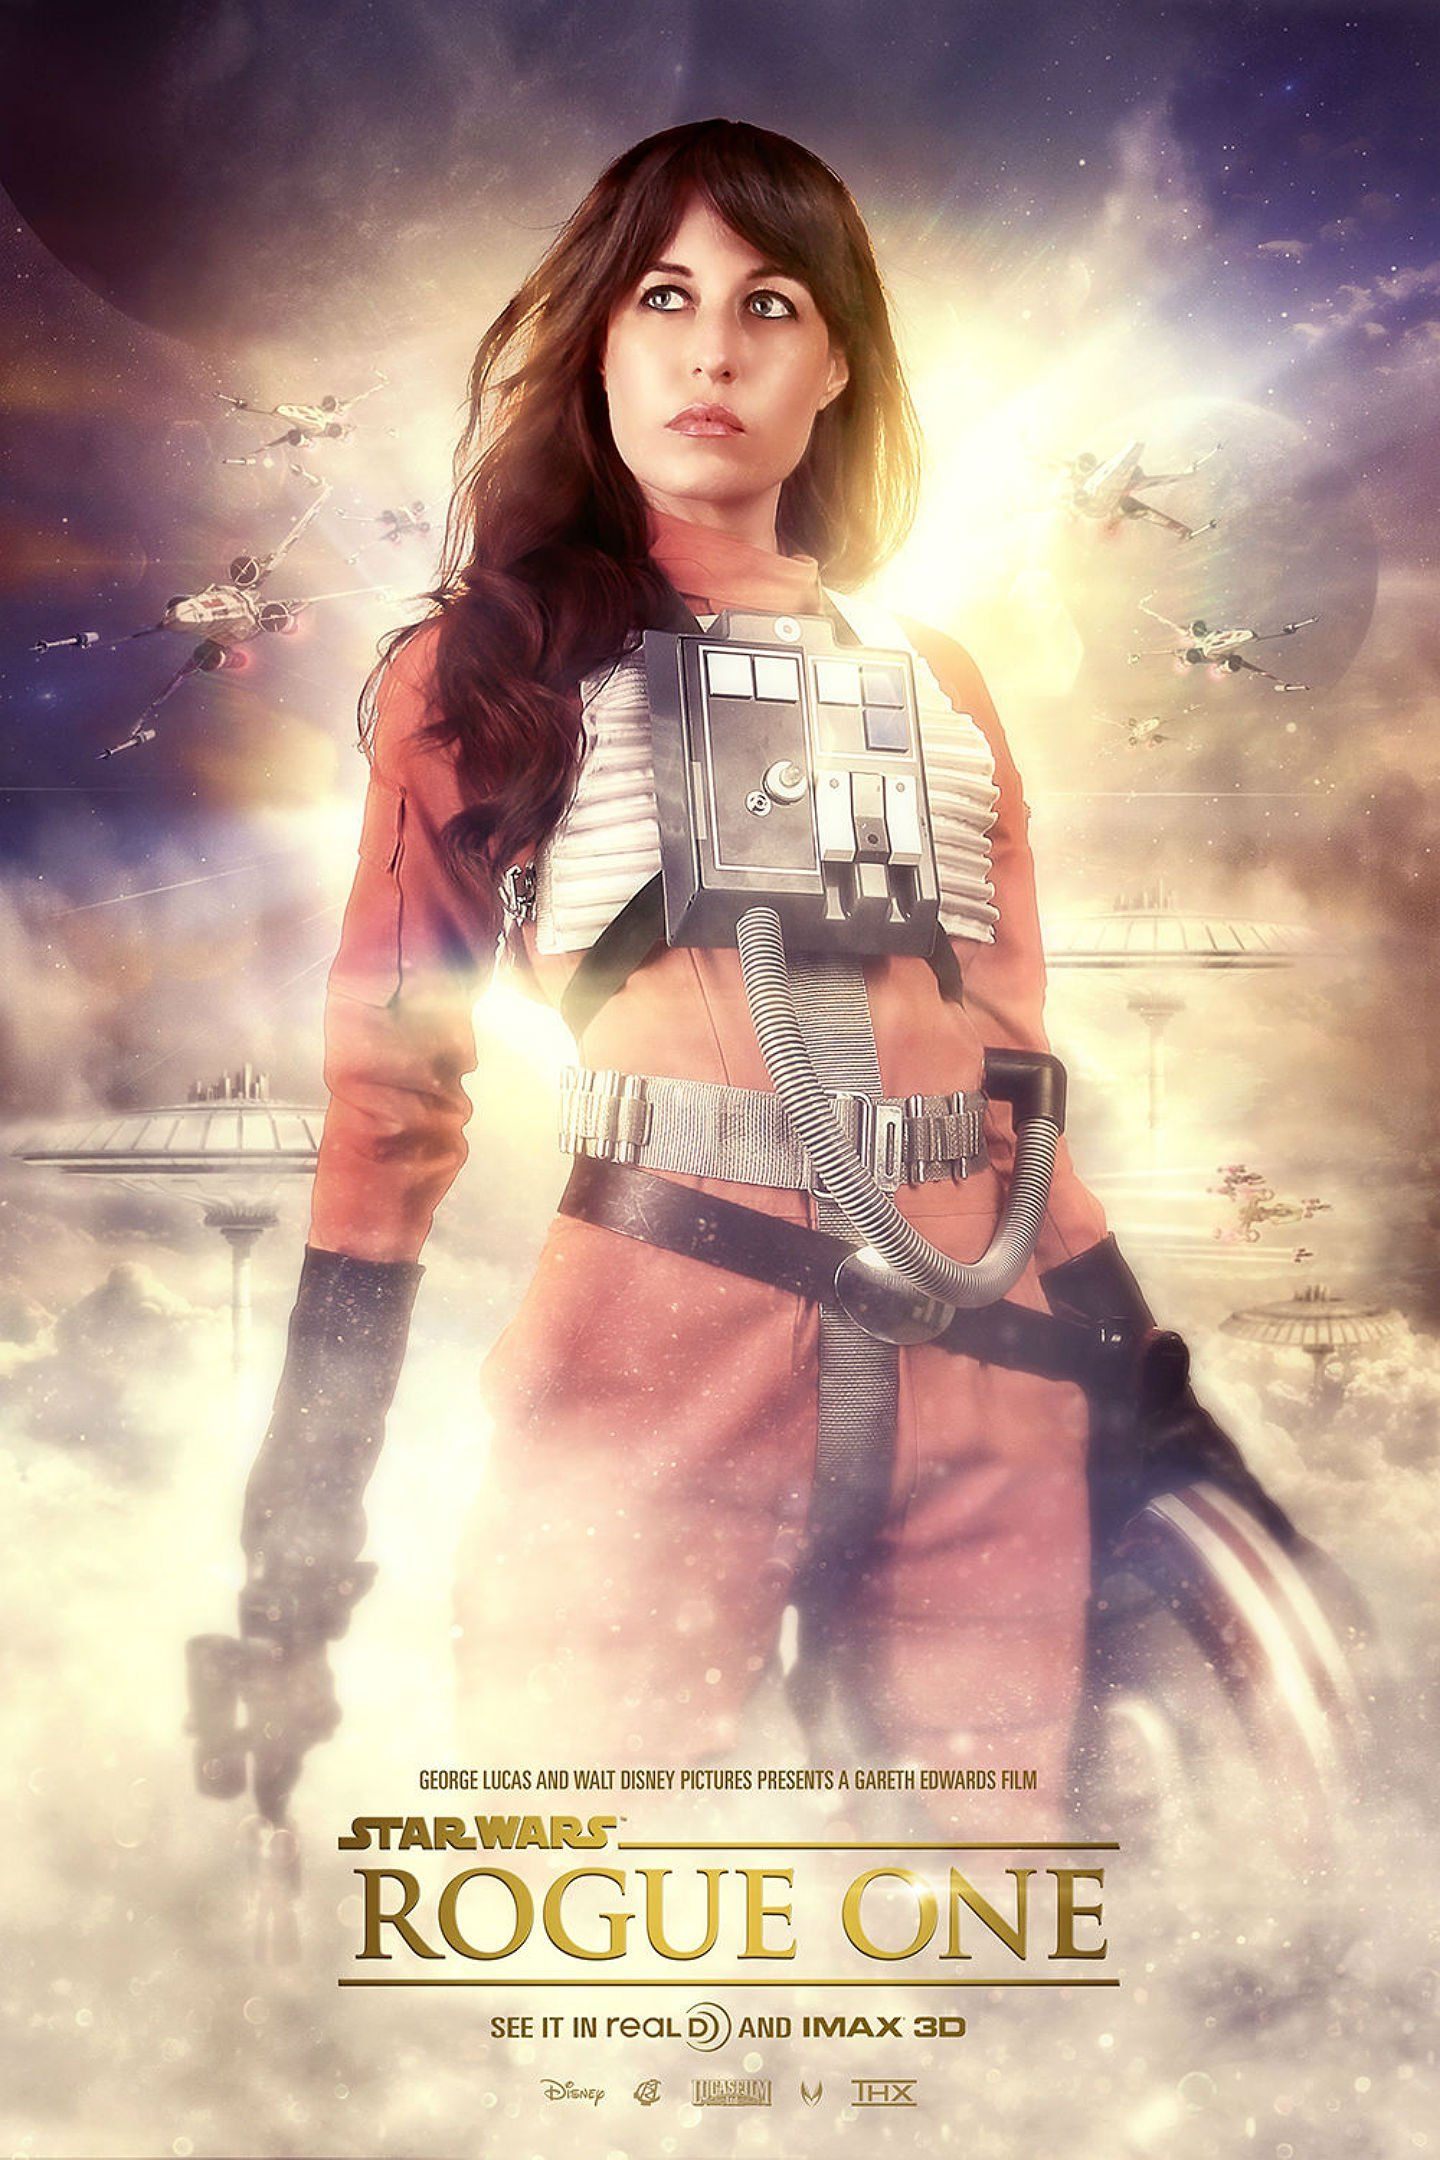 Watch Rogue One A Star Wars Story 2016 Streaming Online For Free Download Digital Hd Movies On Star Wars Film Rogue One Star Wars Star Wars Movies Posters